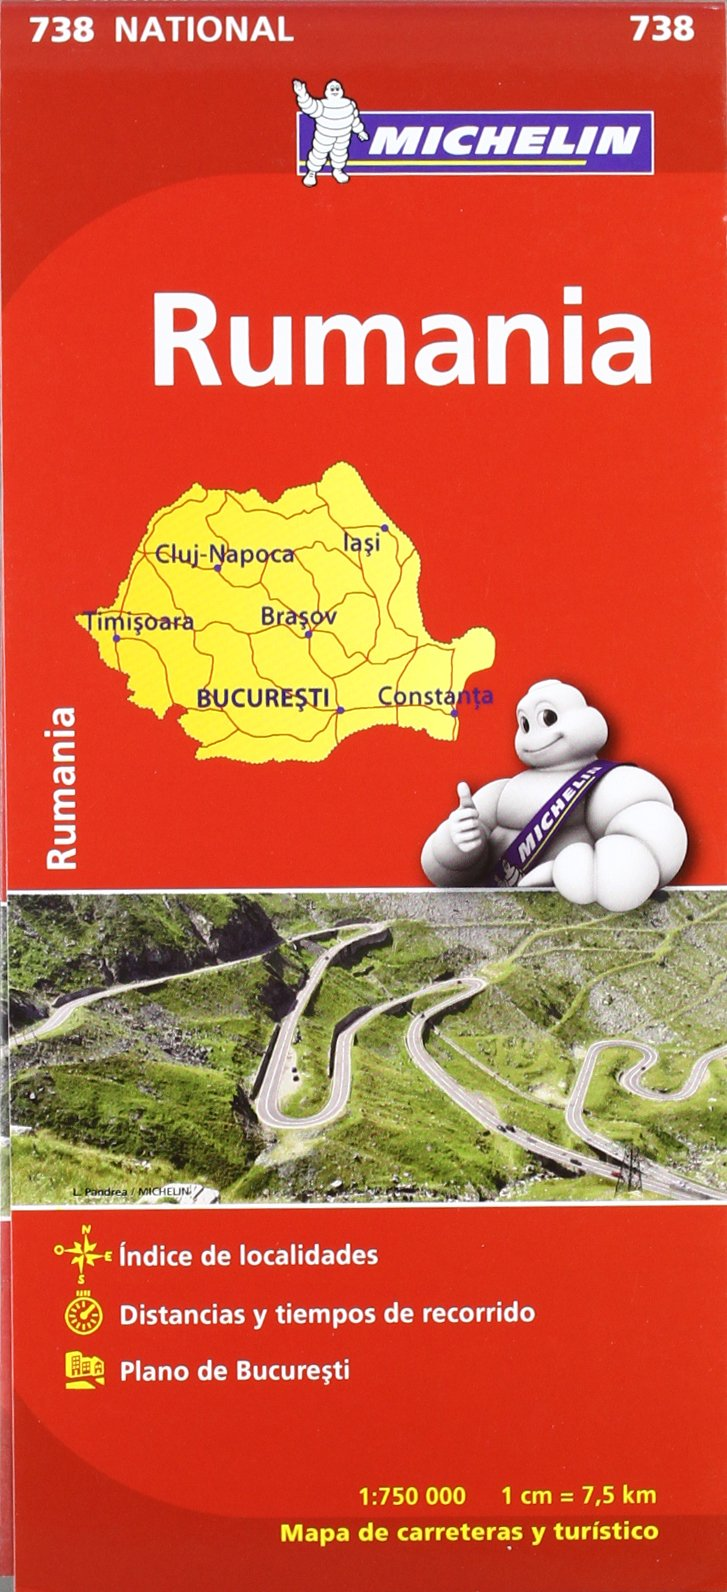 mapa michelin portugal 2013 2012).RUMANIA 738.(MICHELIN): 9782067172111: Books   Amazon.ca mapa michelin portugal 2013